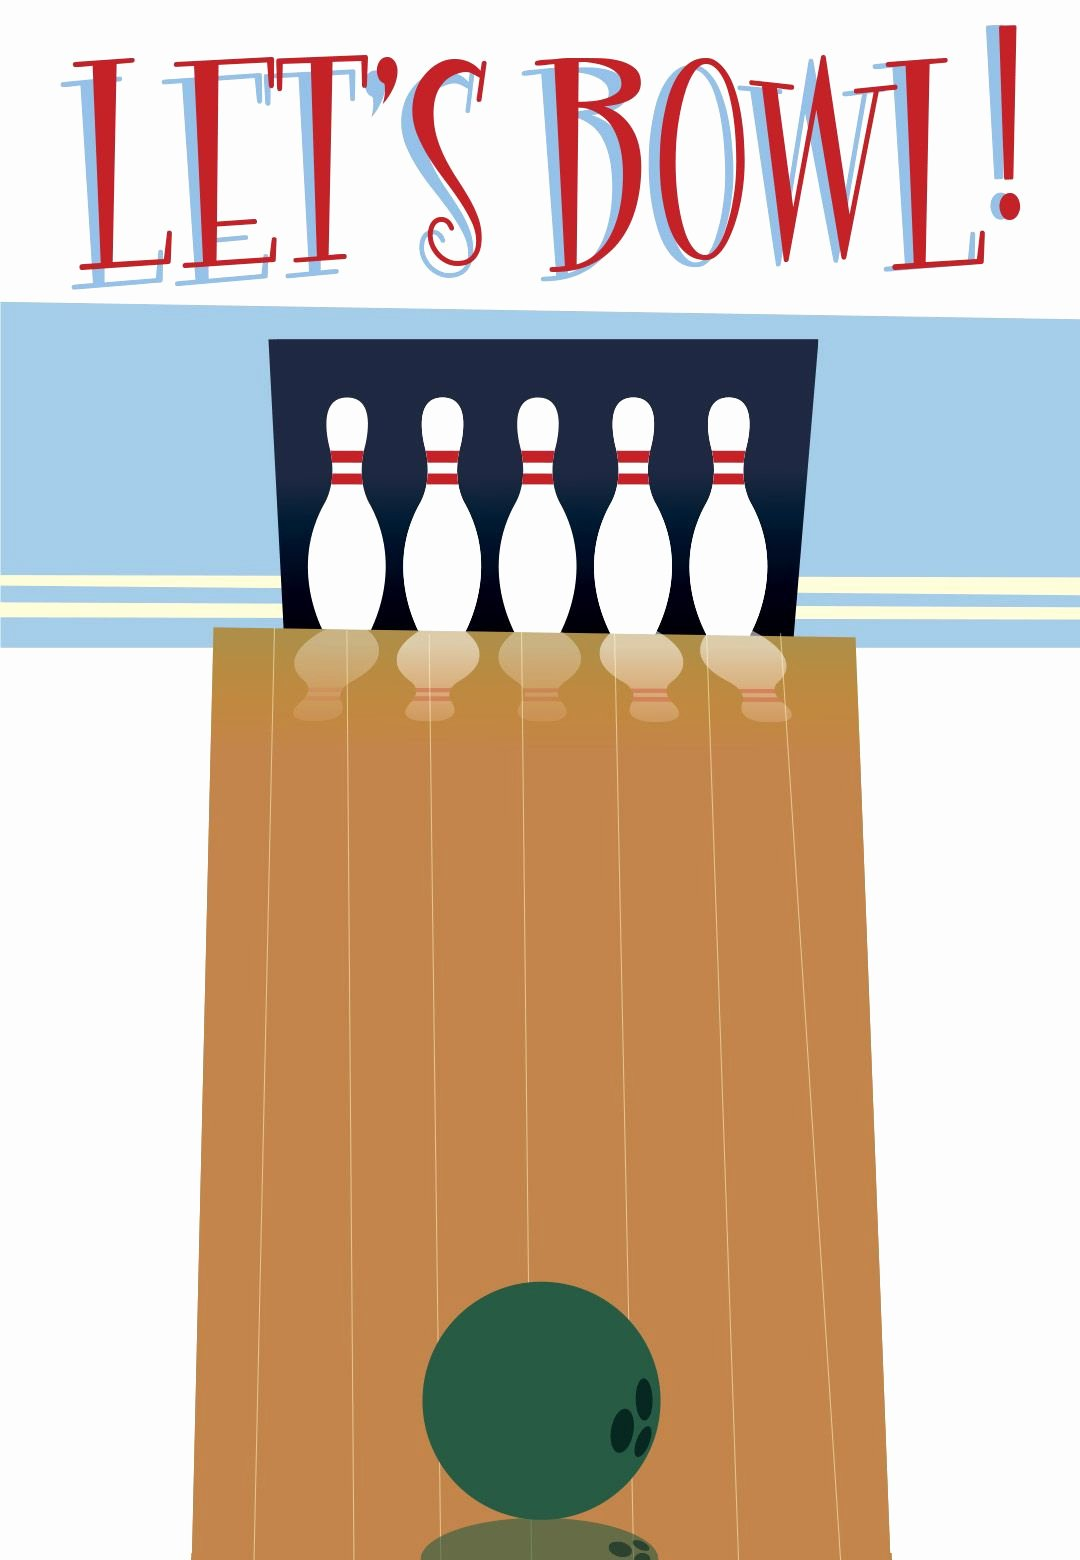 Bowling Party Invitations Templates Lovely Free Printable Bowling Party Invitation Super Cute for